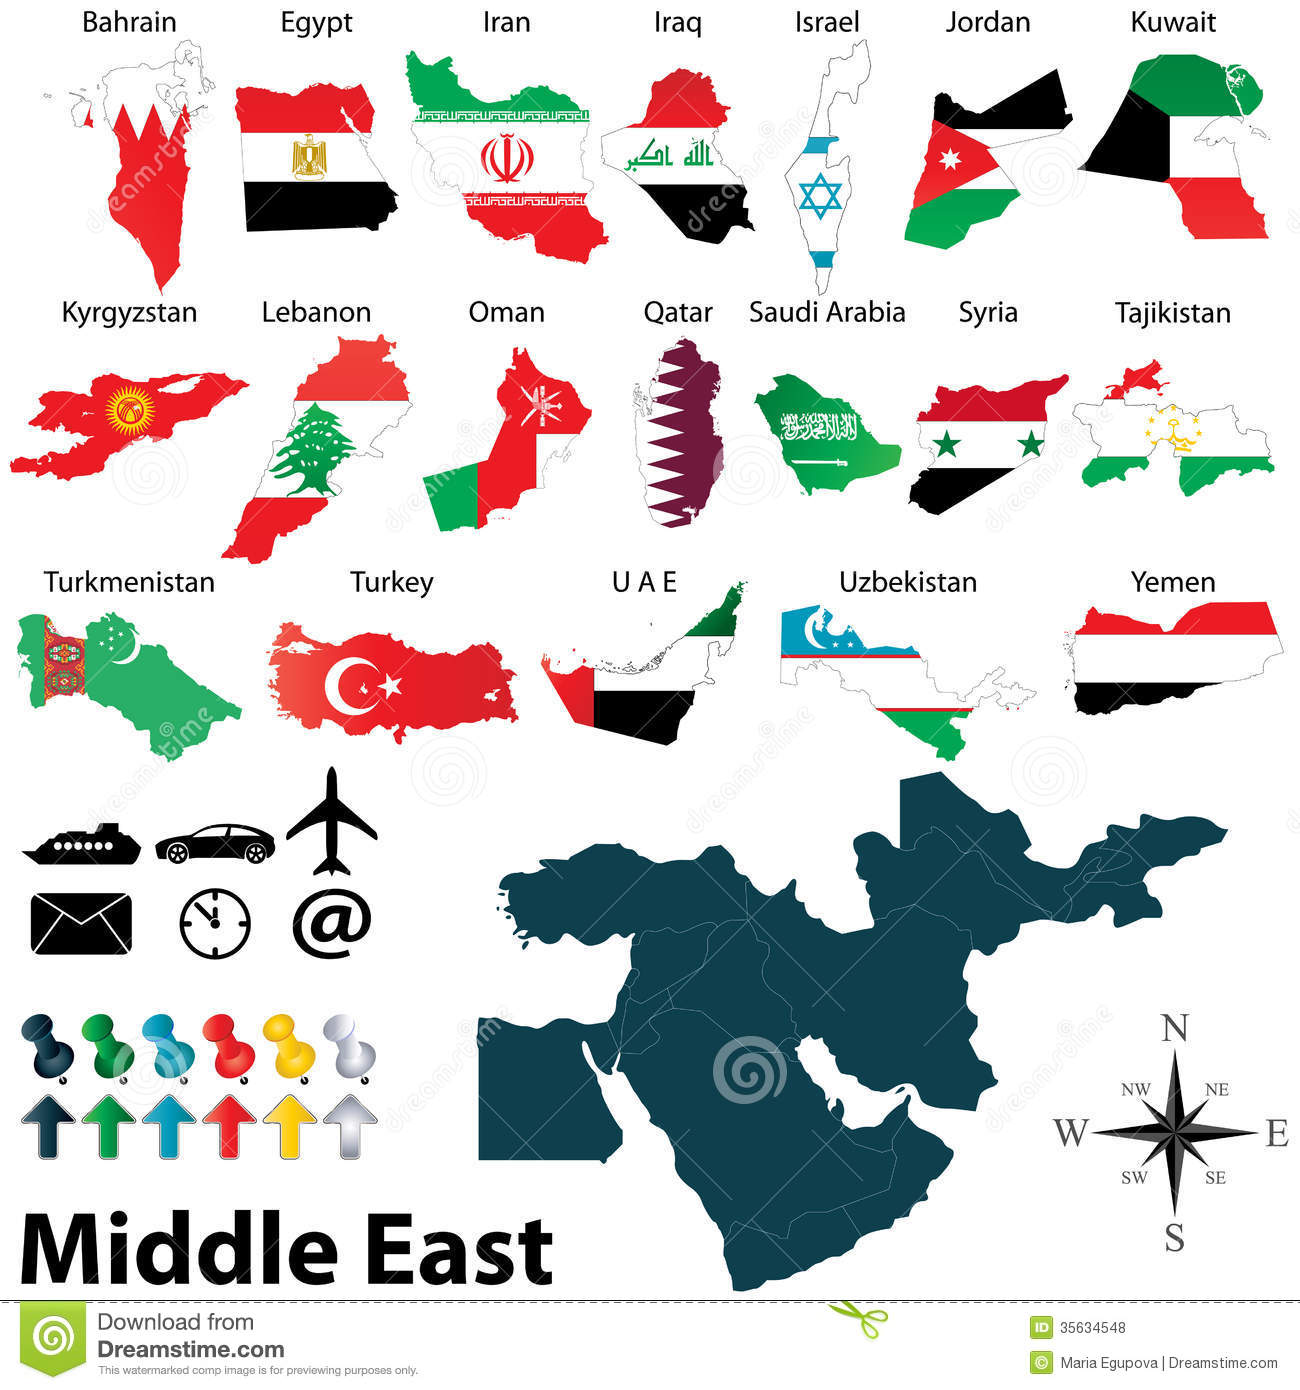 Maps Of Middle East Royalty Free Stock Photos Image  : maps middle east vector political map set flags white background 35634548 from www.dreamstime.com size 1300 x 1390 jpeg 186kB